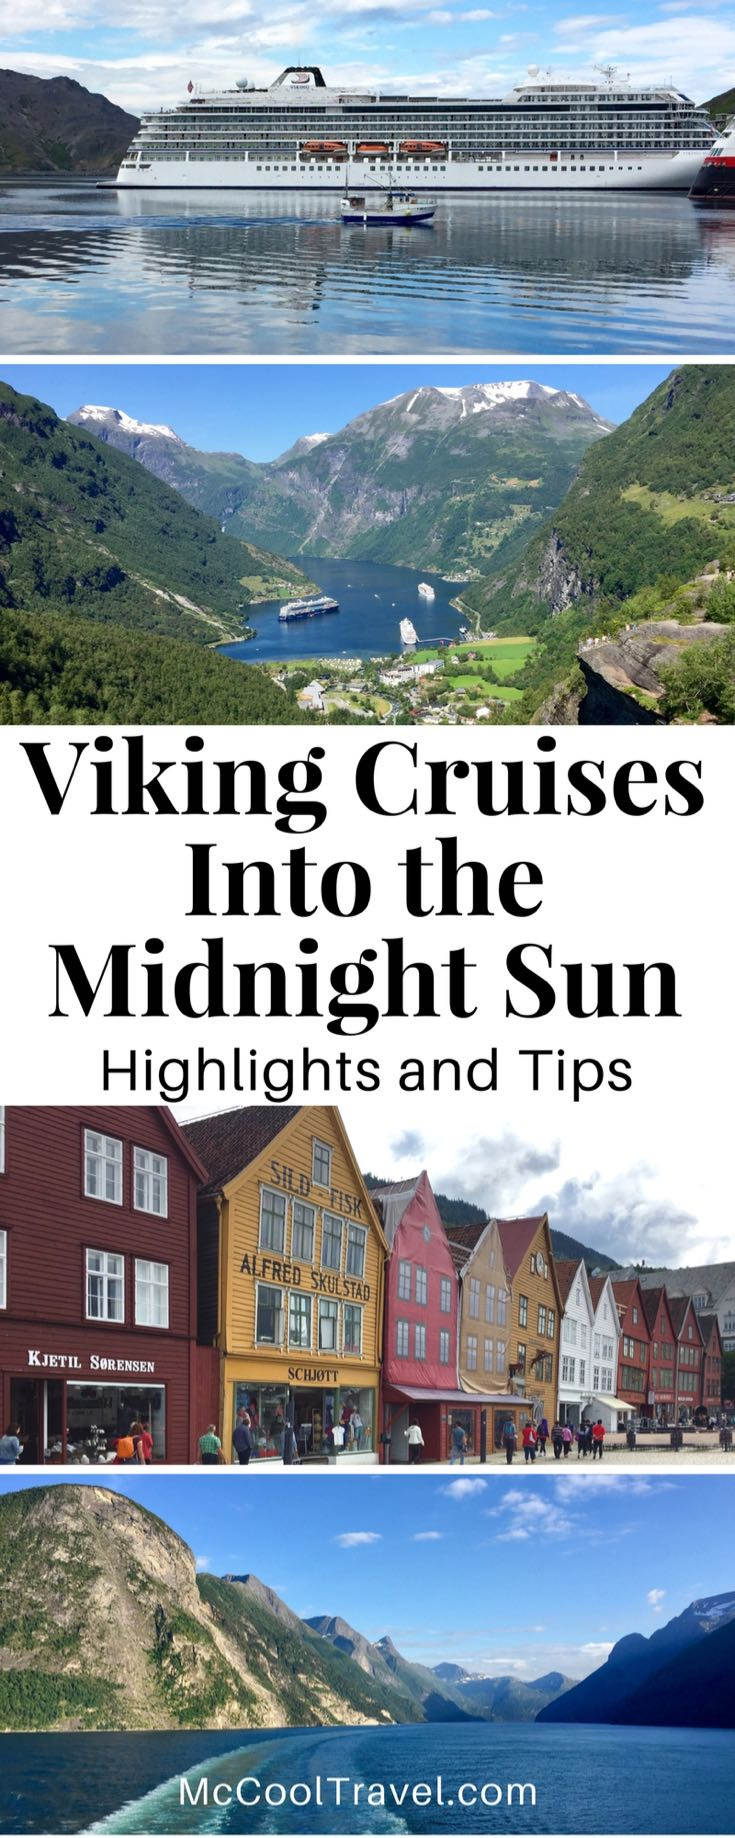 Travel. Viking Cruises Into the Midnight Sun highlights + tips. Norway, United Kingdom. Viking Ocean Cruises Into the Midnight Sun itinerary combines wild and beautiful ports with magical scenic days at sea, on a 15-day journey above the Arctic Circle.